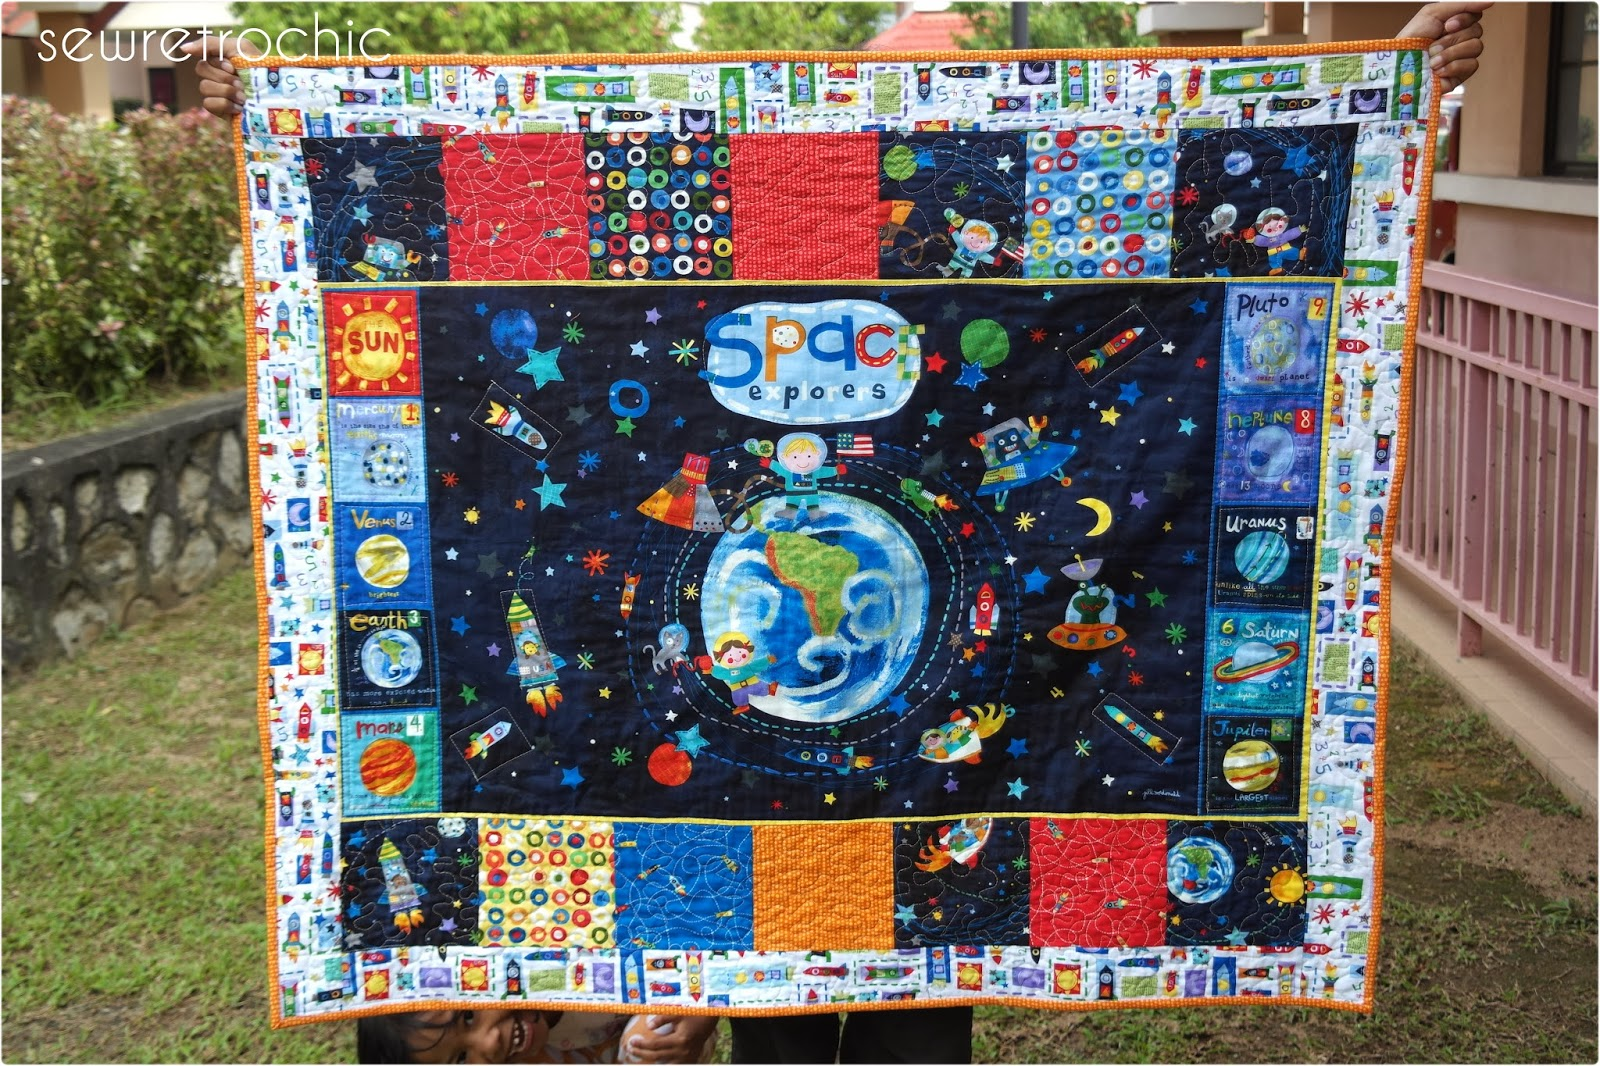 Sew retro chic an astro boy quilt for baby harith for Outer space fabric panel